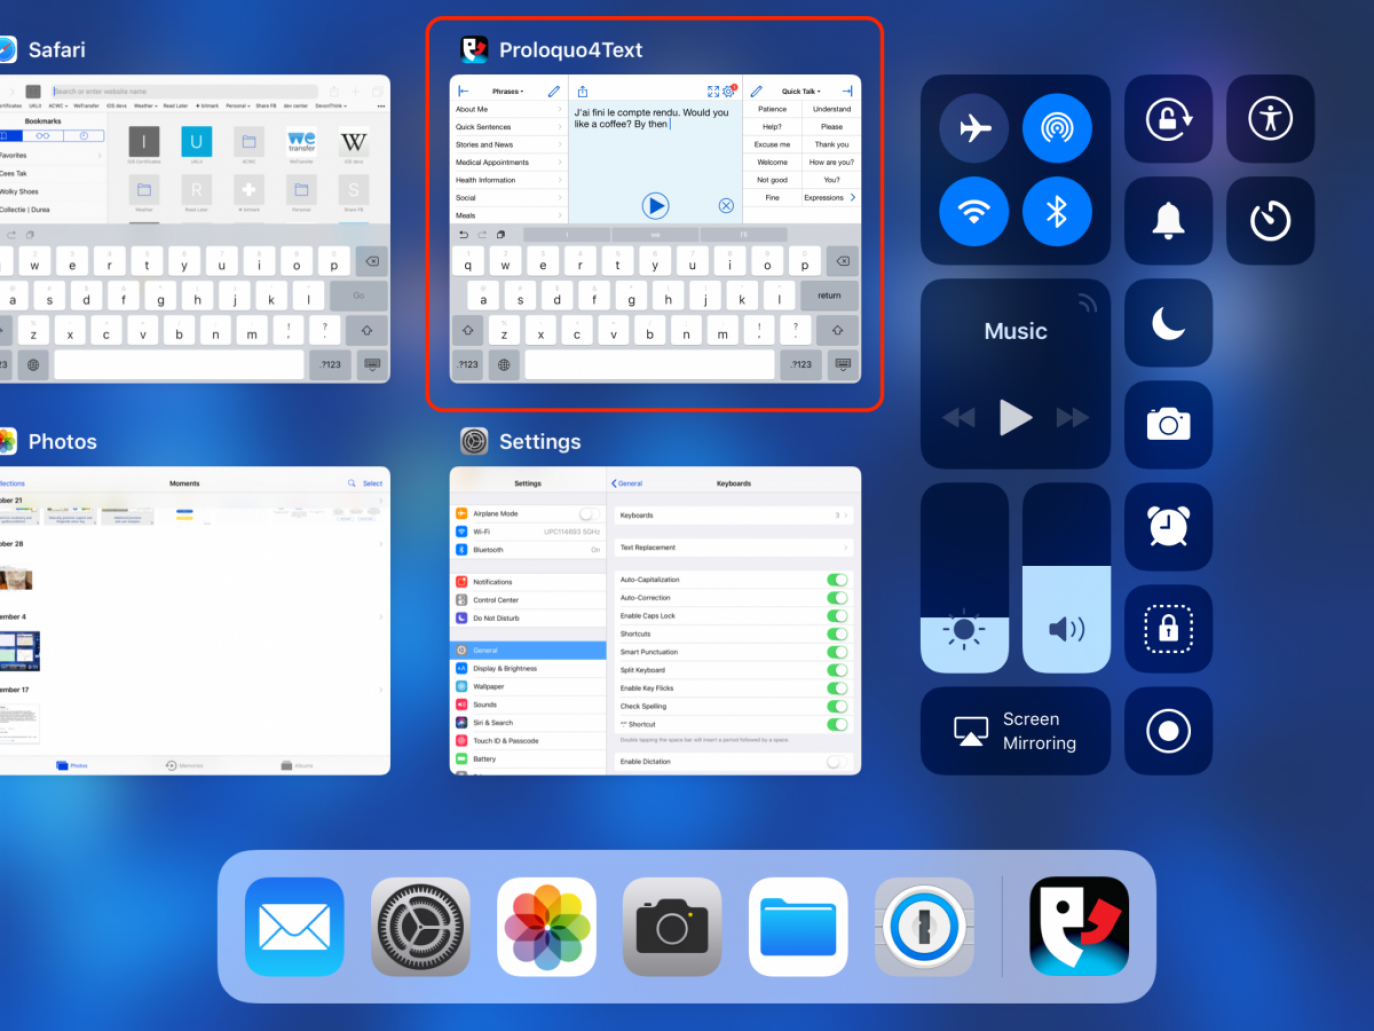 iOS Control Center with Proloquo4Text selected